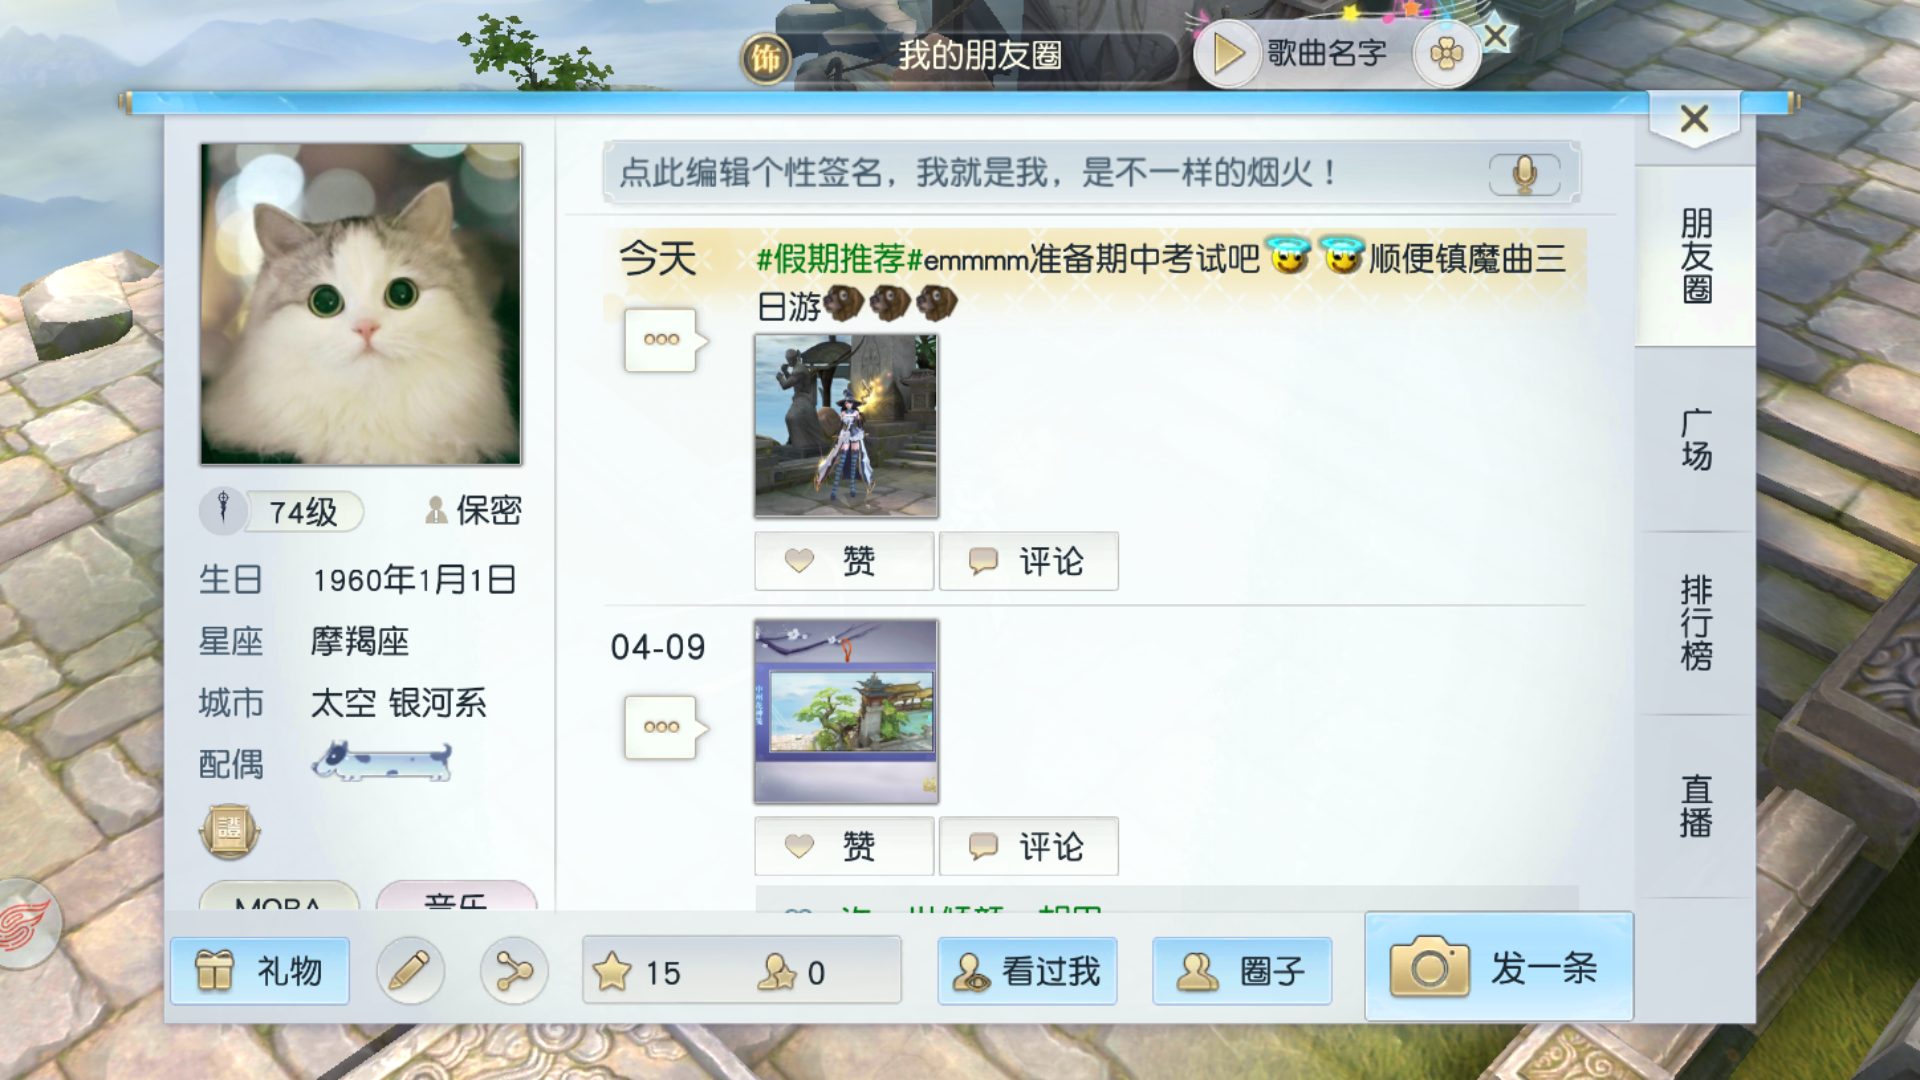 Screenshot_2018-04-27-16-00-37-910_com.netease.zmq.png